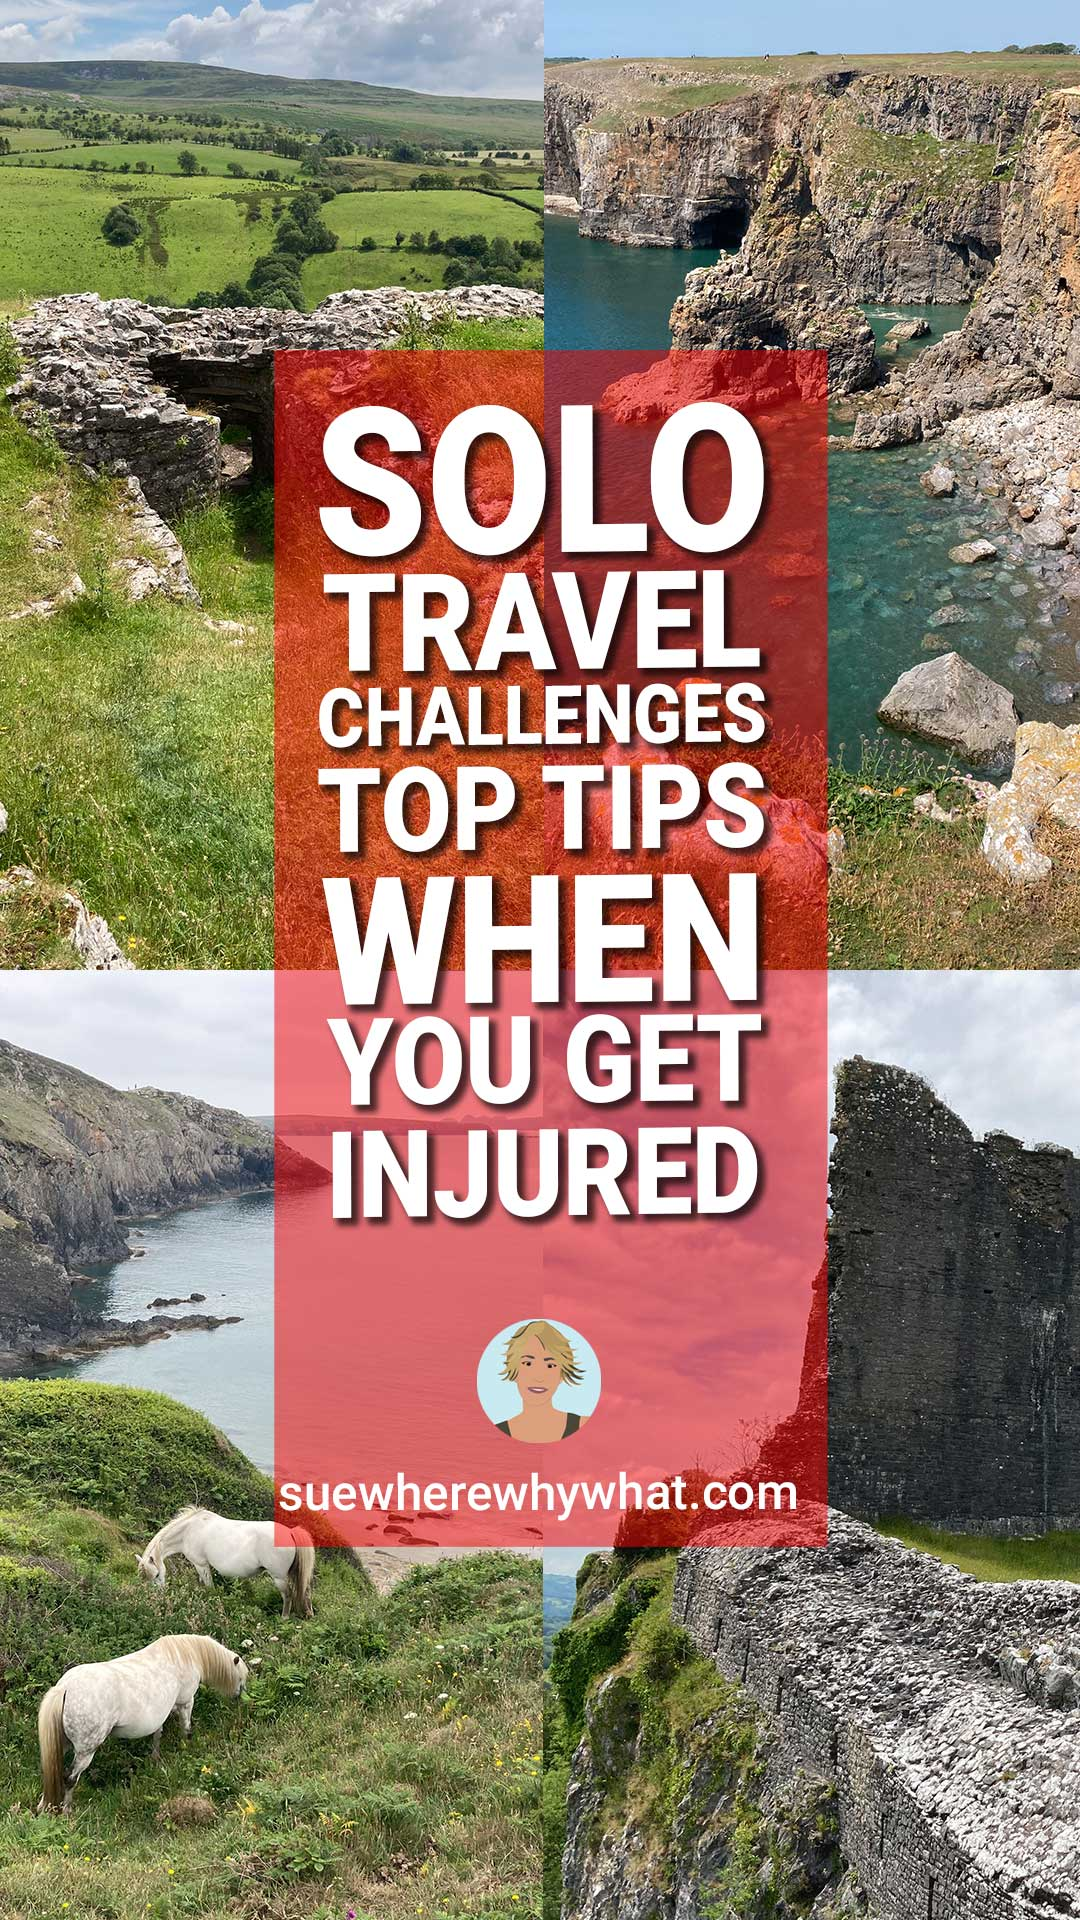 Disadvantages of travelling alone – What happens when you get injured?